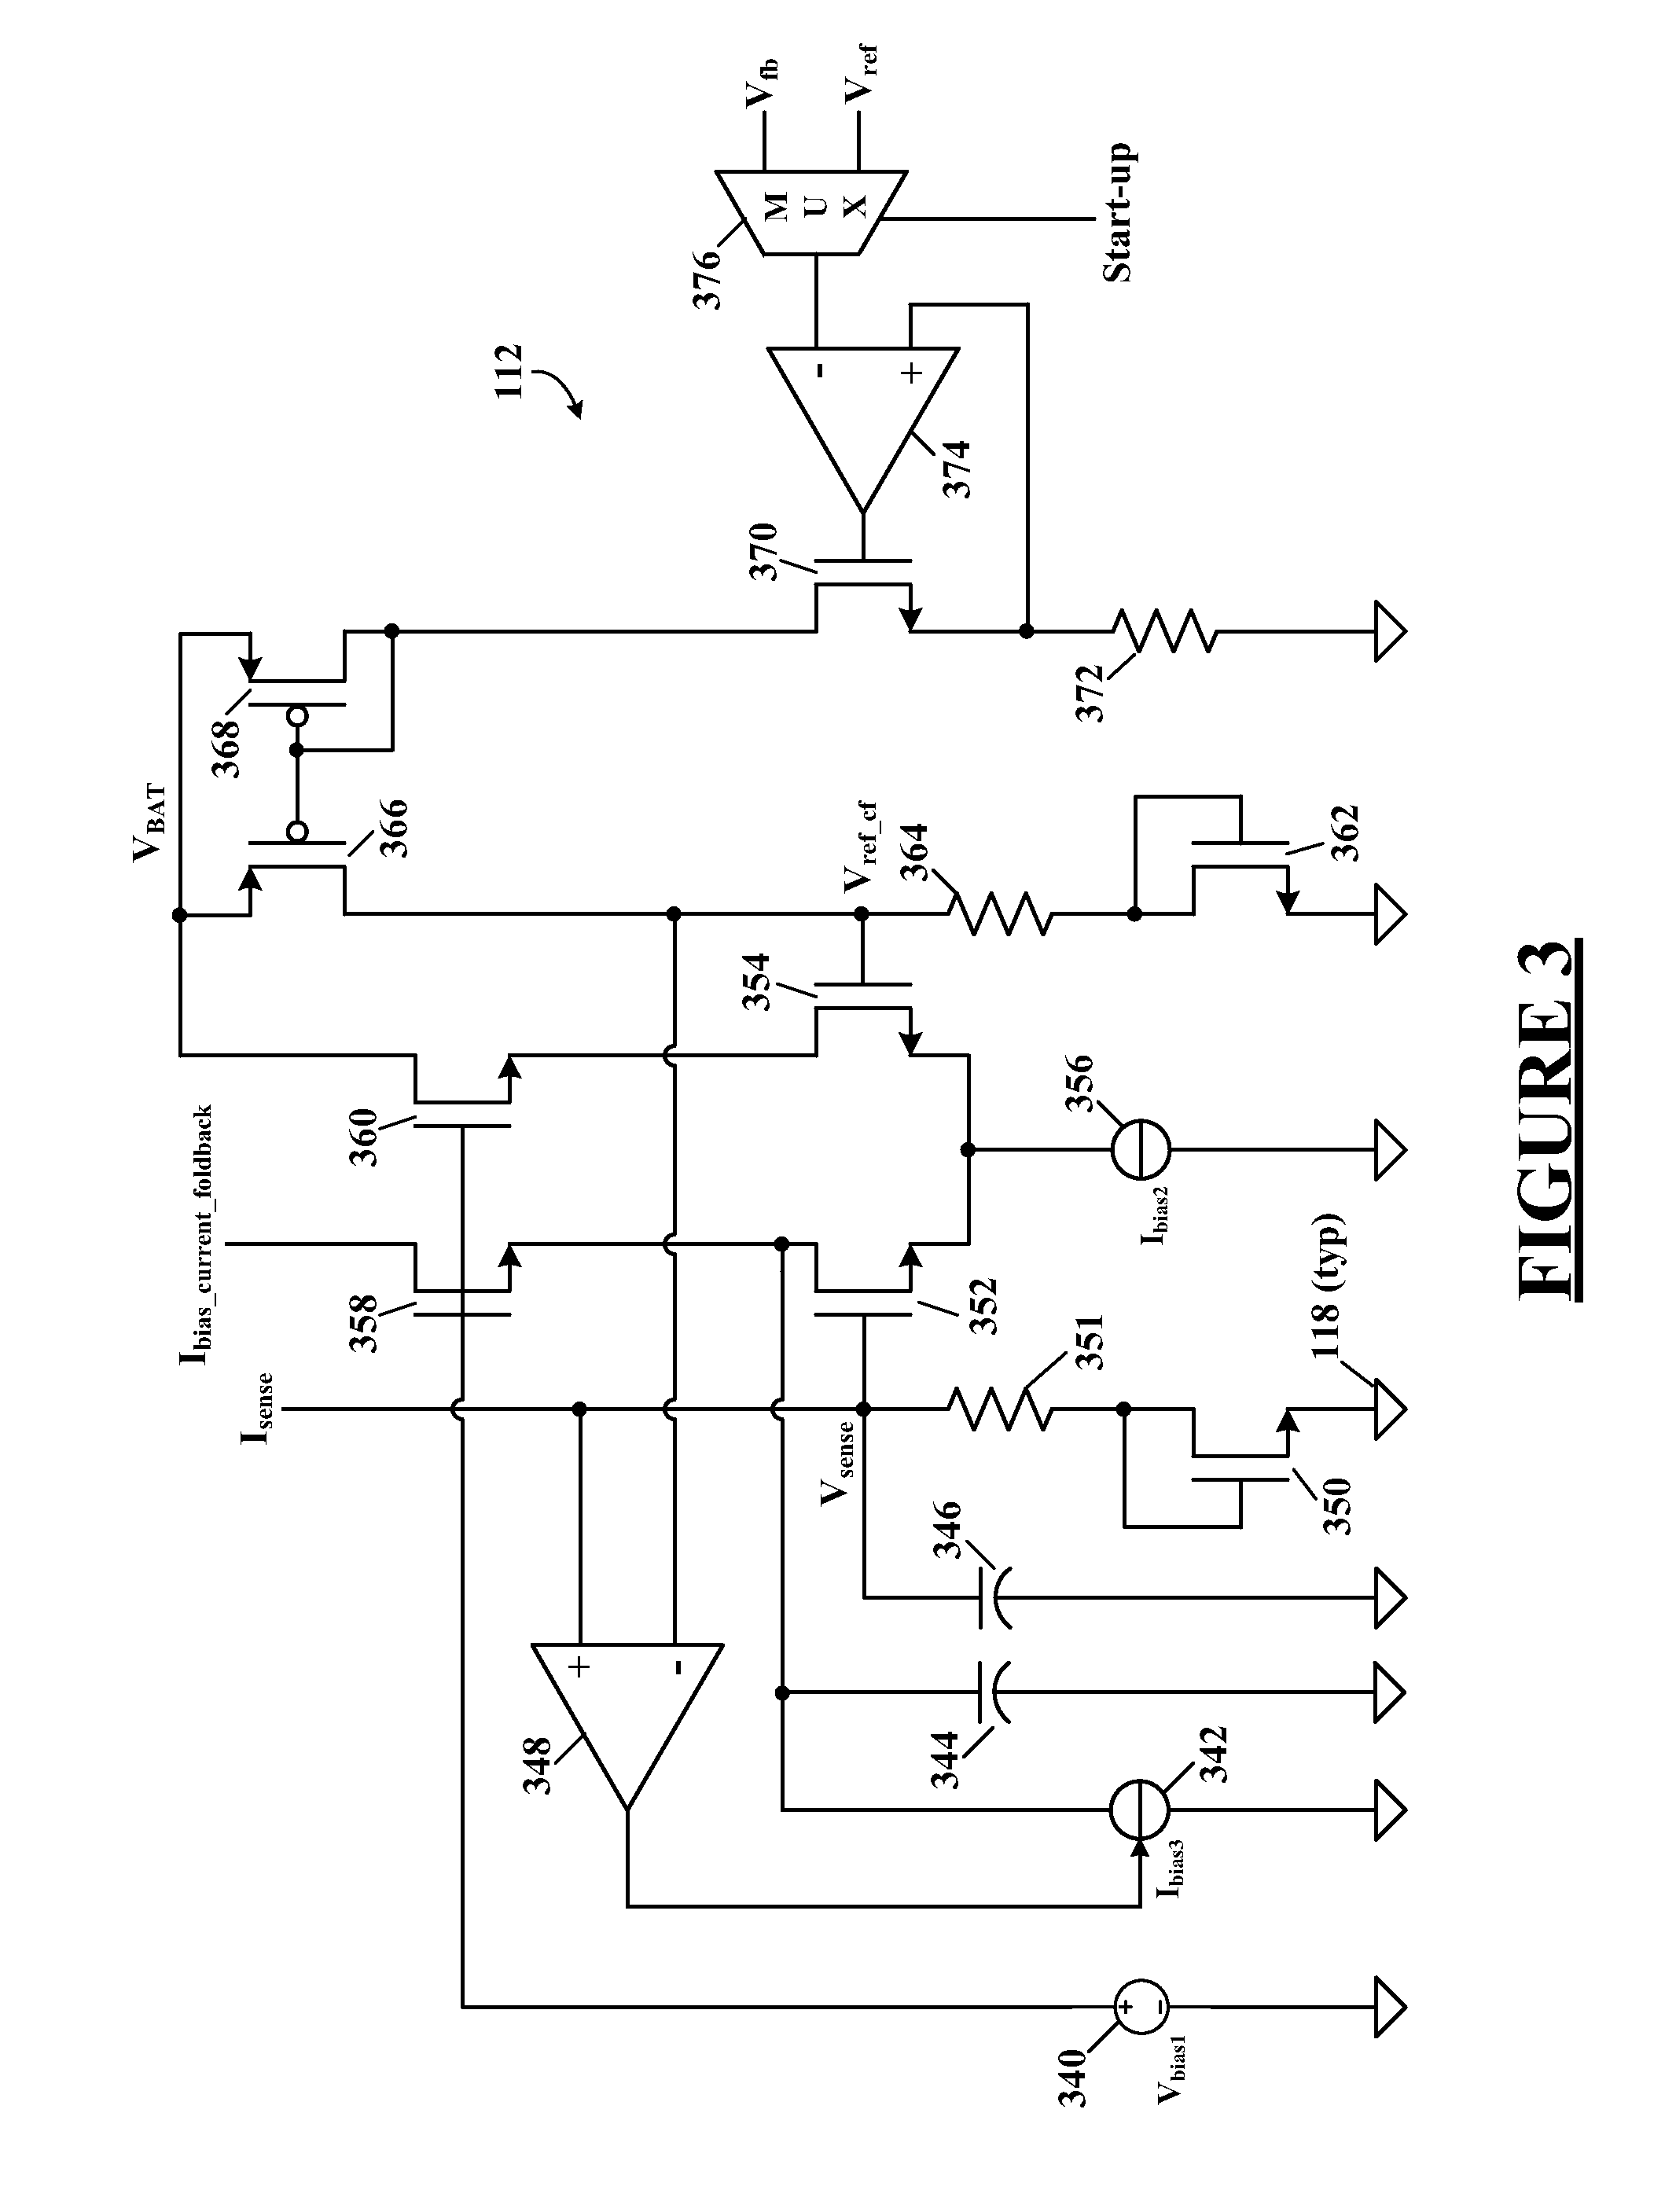 Brevet Us8841897 Voltage Regulator Having Current And Foldback Limiting Circuit Patent Drawing